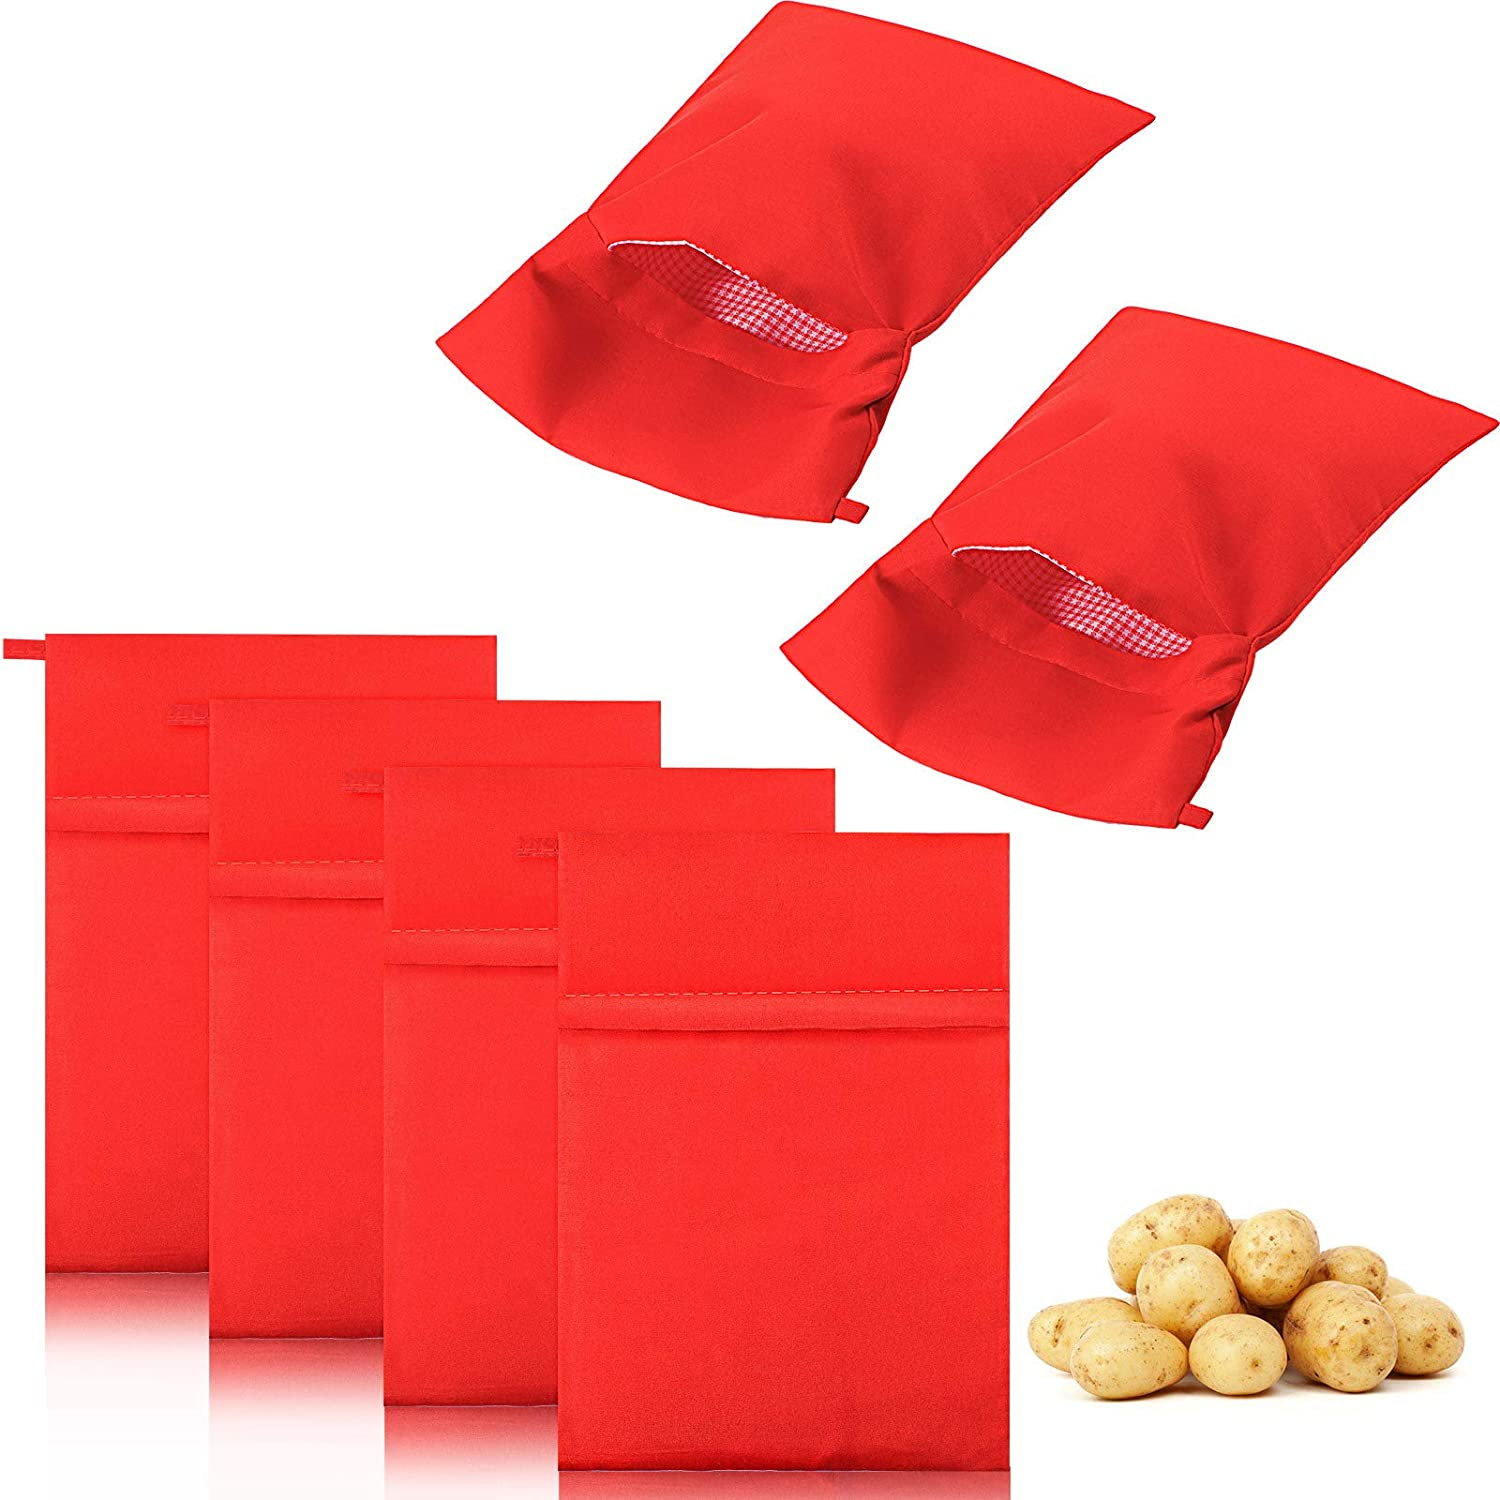 6 Pieces Microwave Potato Bag Reusable Baked Potato Pouch Time-saving Roasted Potato Cooker Bag for Potatoes Yam Corn